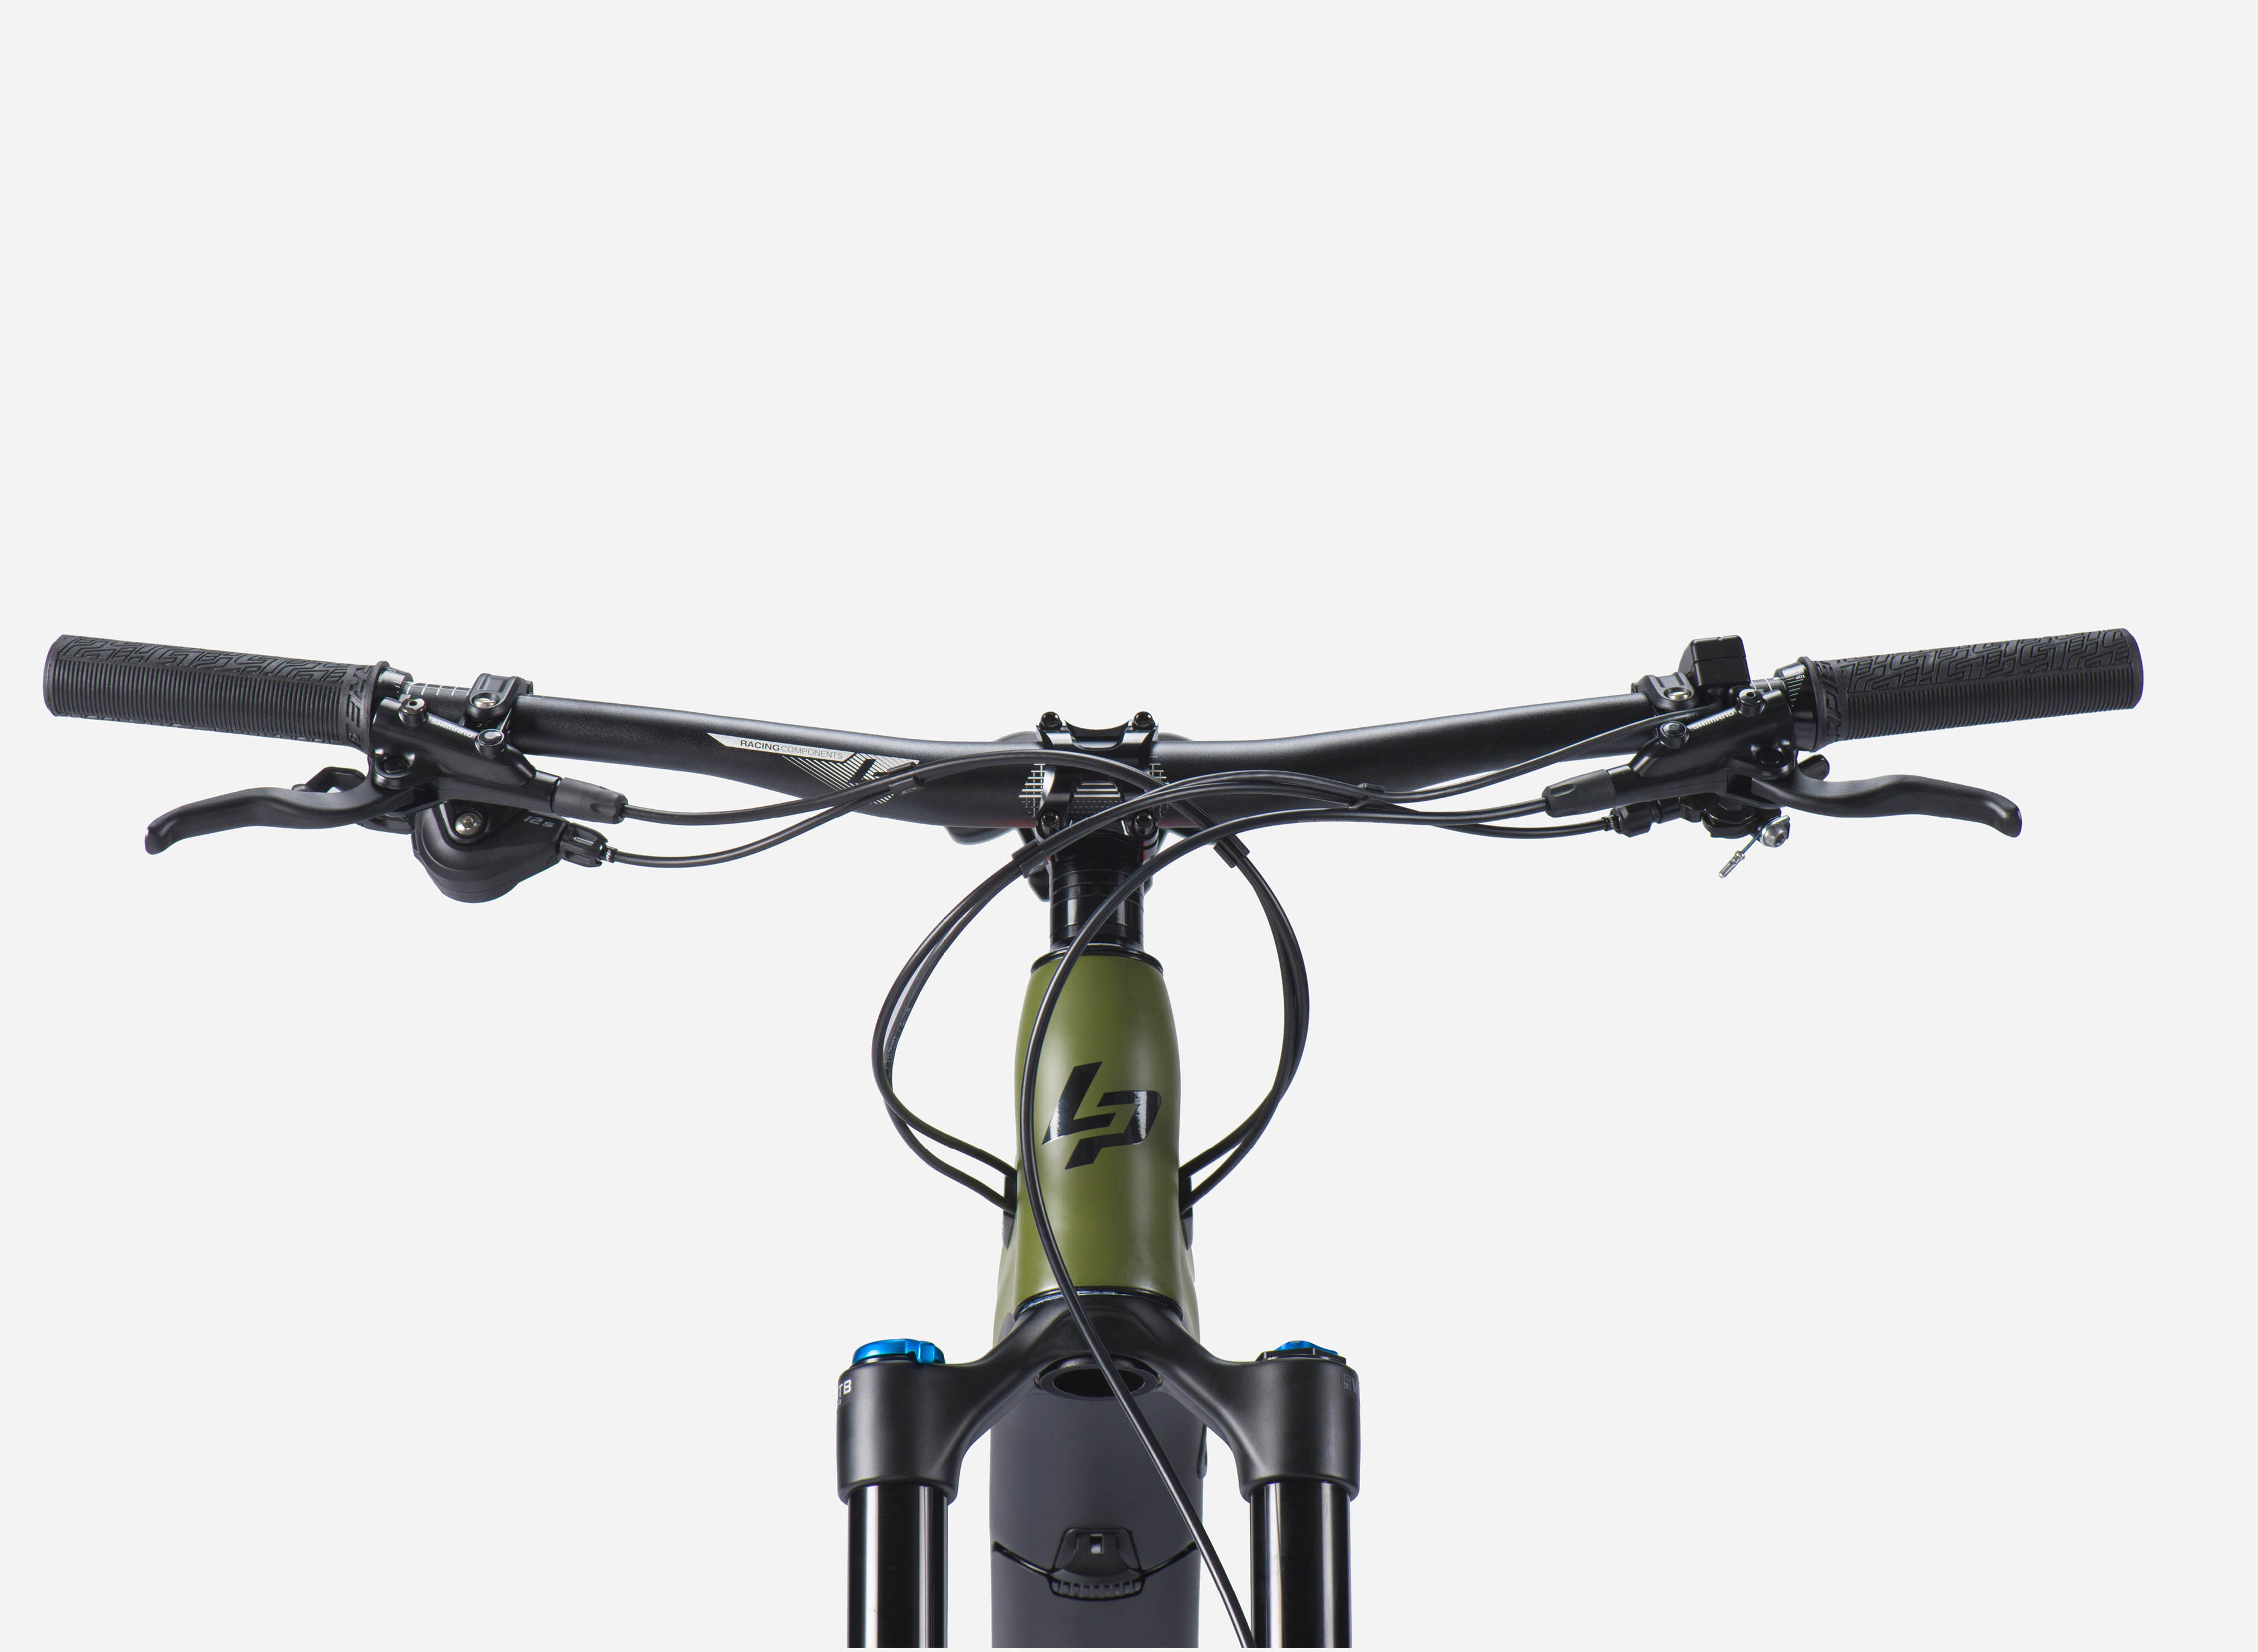 Front view of a Lapierre eZesty AM 9.2 electric mountain bike